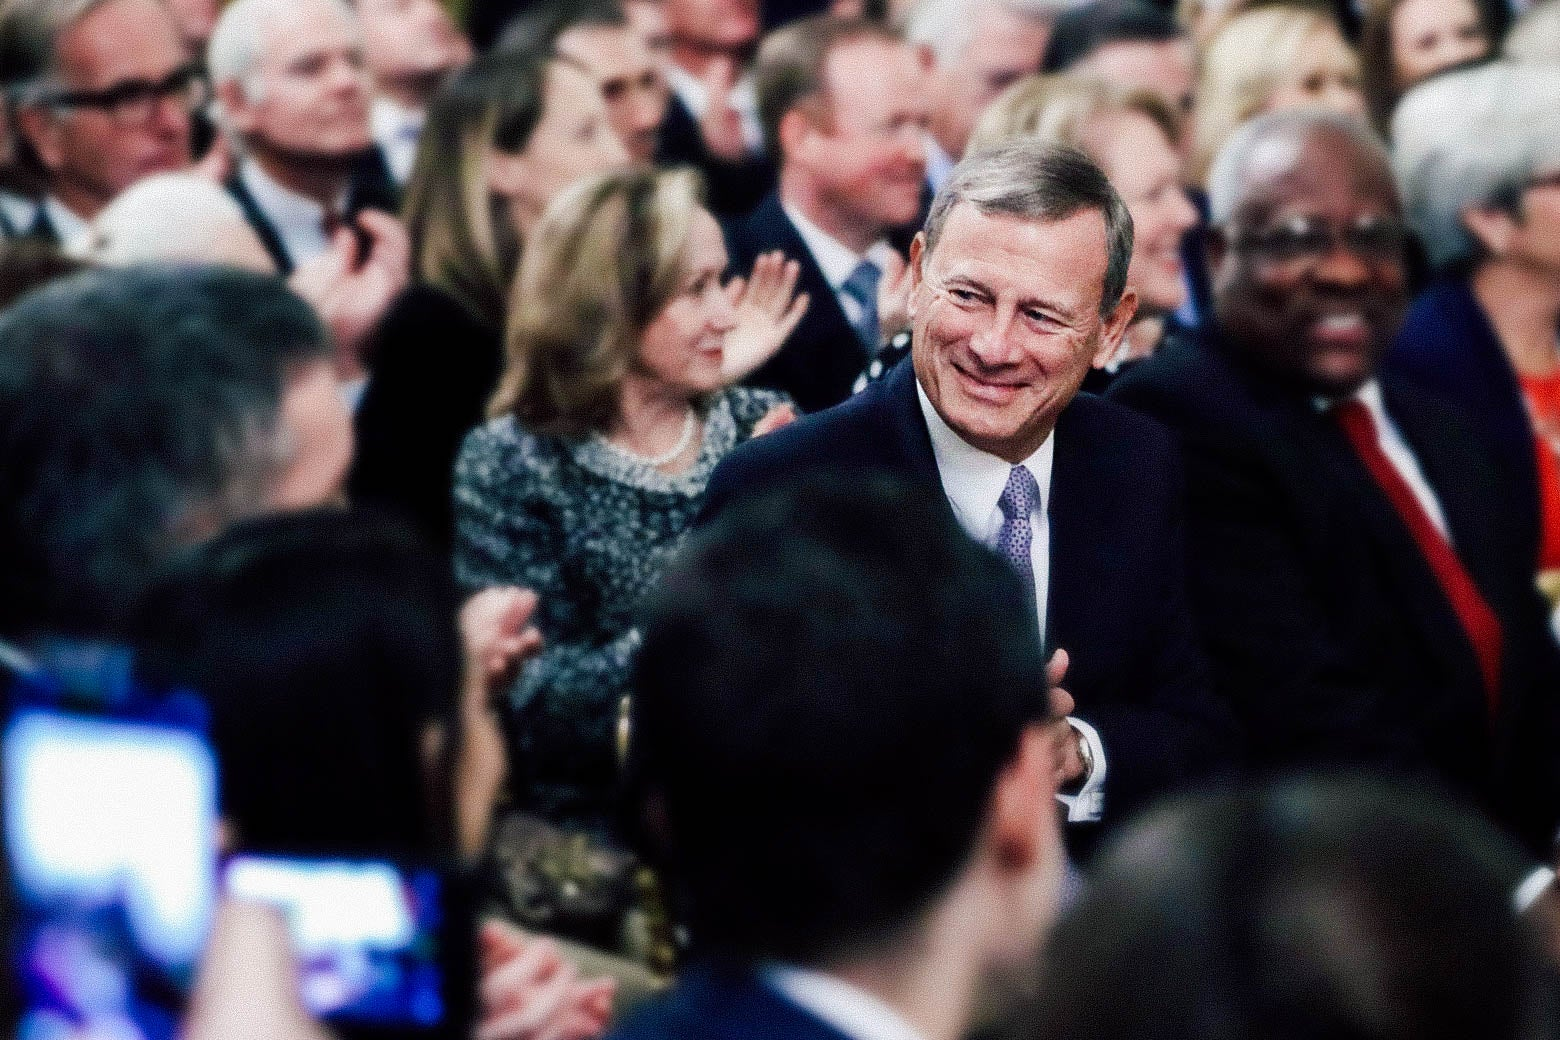 Chief Justice John Roberts and Associate Justices Clarence Thomas and Ruth Bader Ginsburg attend the ceremonial swearing-in of Associate Justice Brett Kavanaugh.